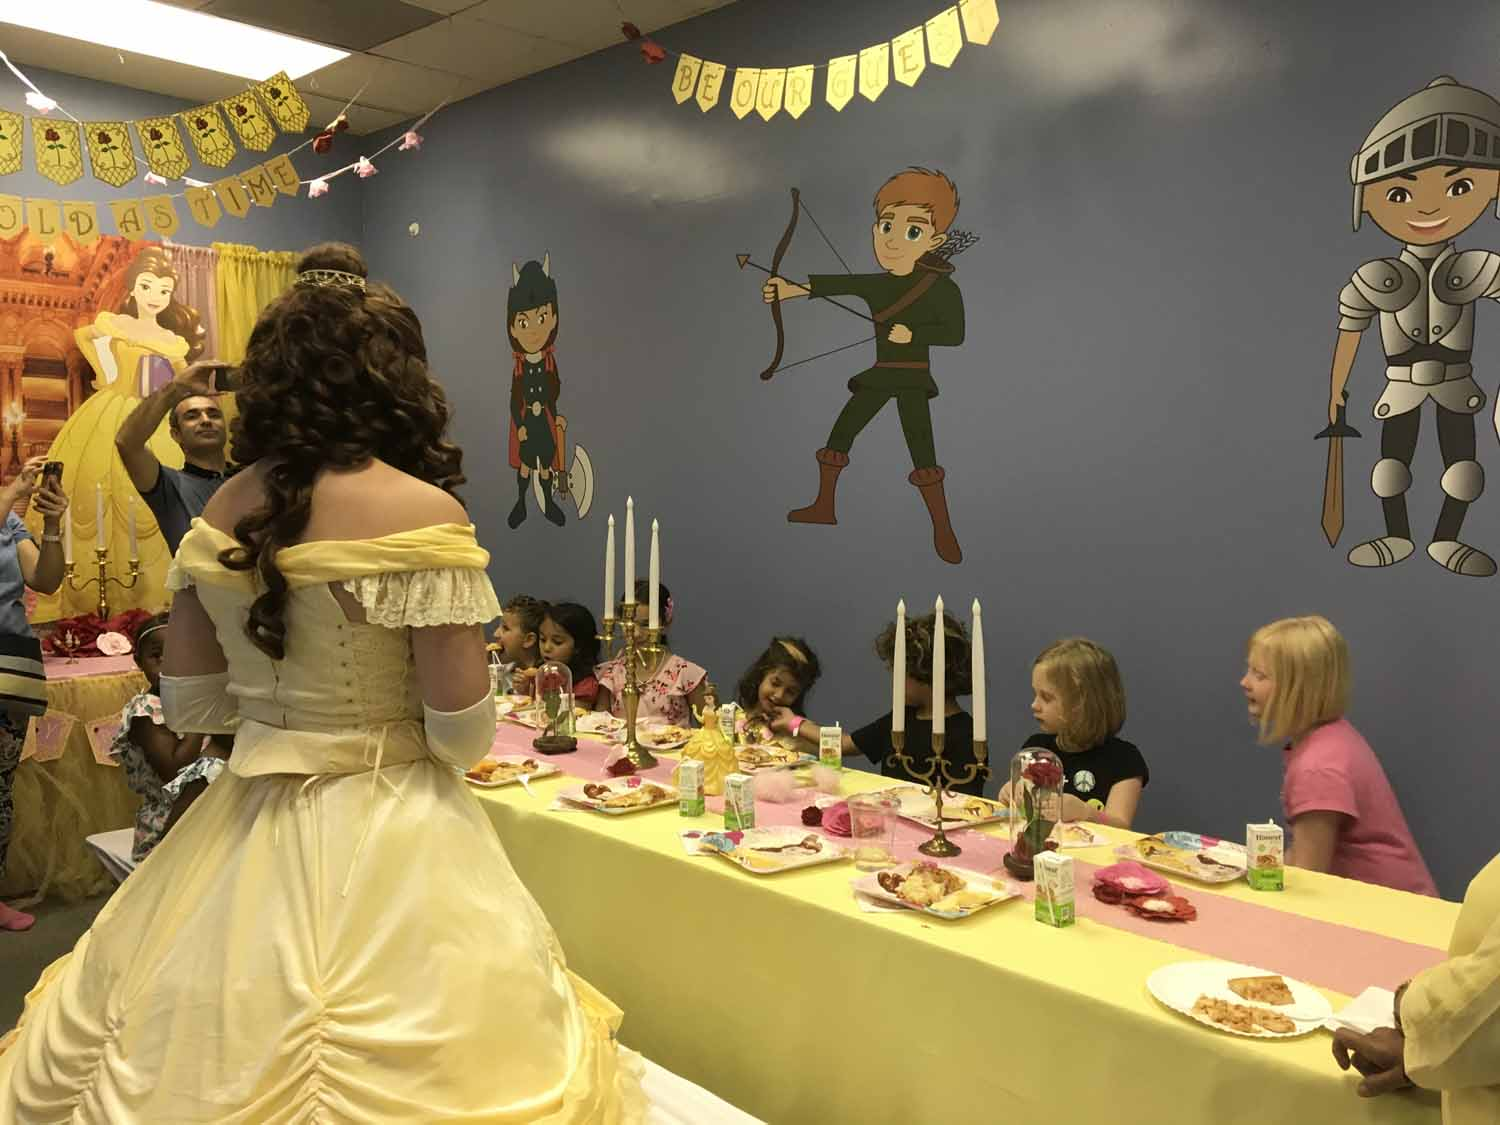 3 year old birthday party ideas orlando - beauty and the beast theme (12).jpg